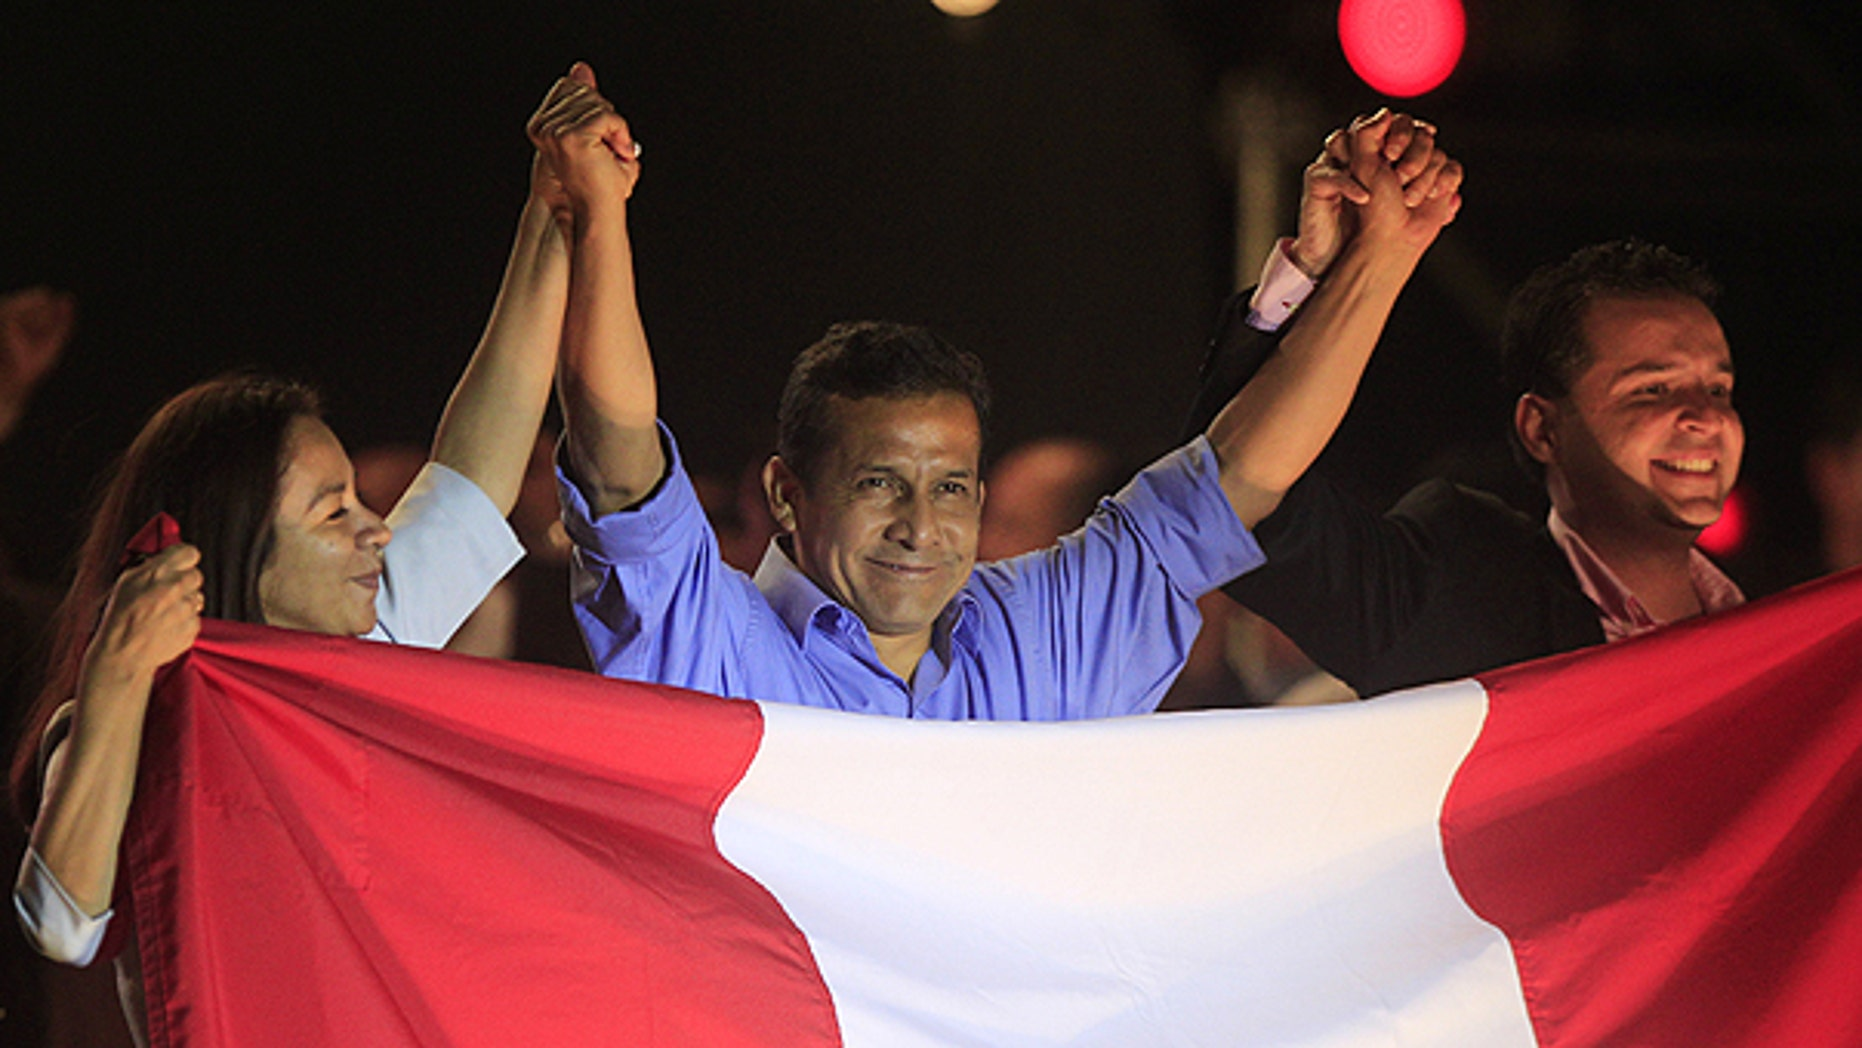 June 5: Peru's presidential candidate Ollanta Humala, center, raises hands with his running mates First Vice President Marisol Espinoza, left, and Second Vice President Omar Chehade after the presidential runoff election in Lima, Peru.